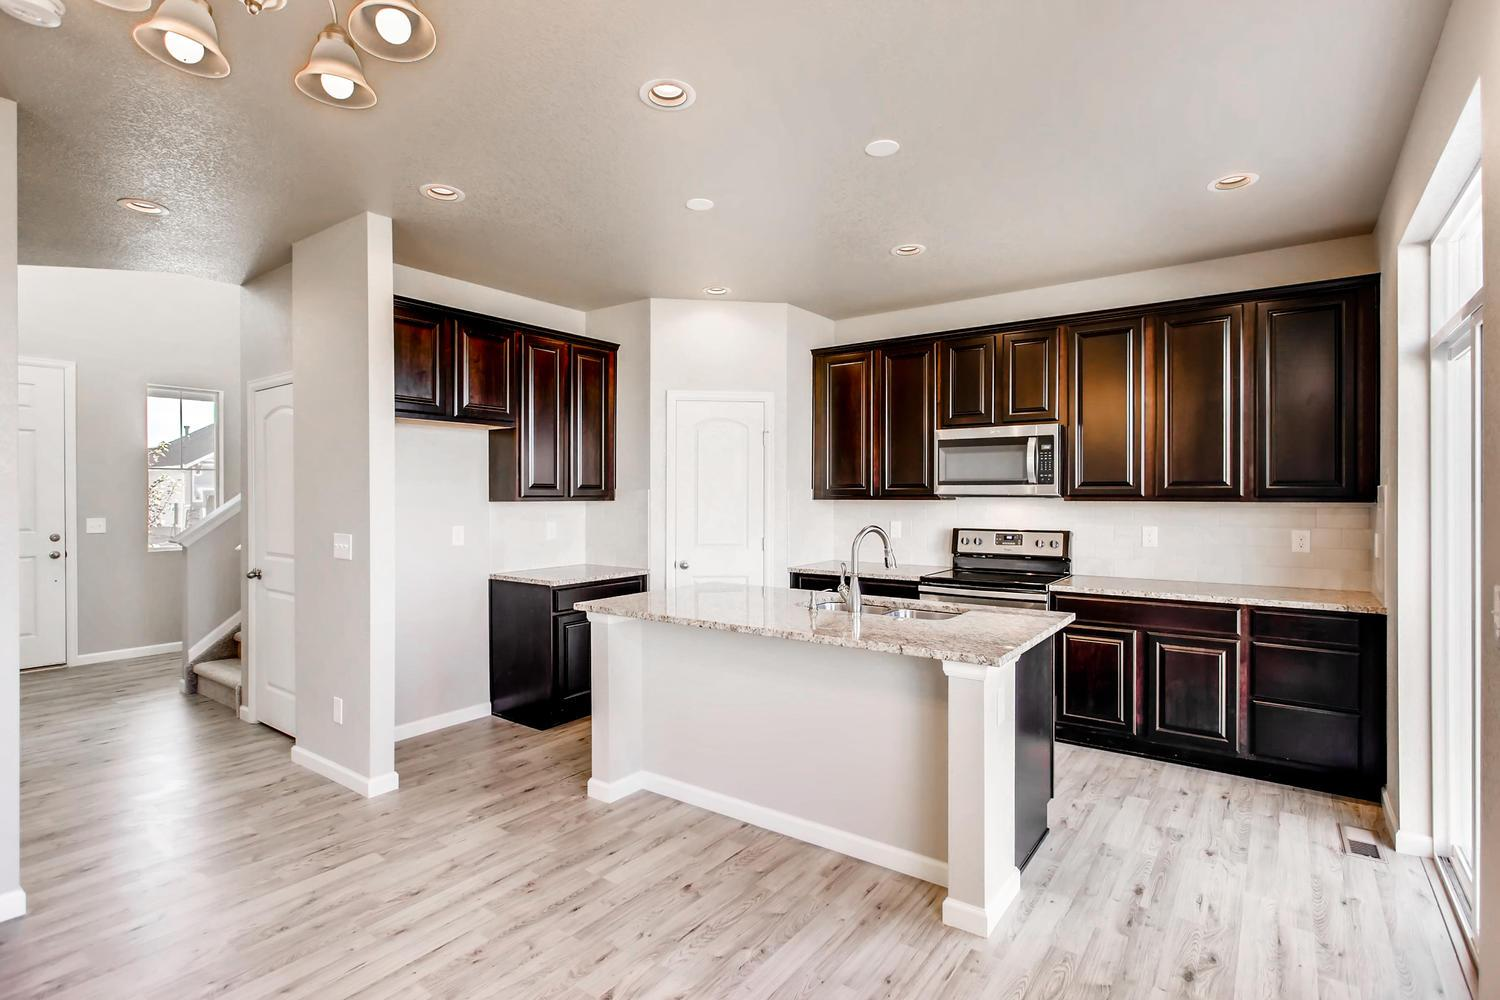 Kitchen featured in the Keystone II By RichfieldHomes in Fort Collins-Loveland, CO